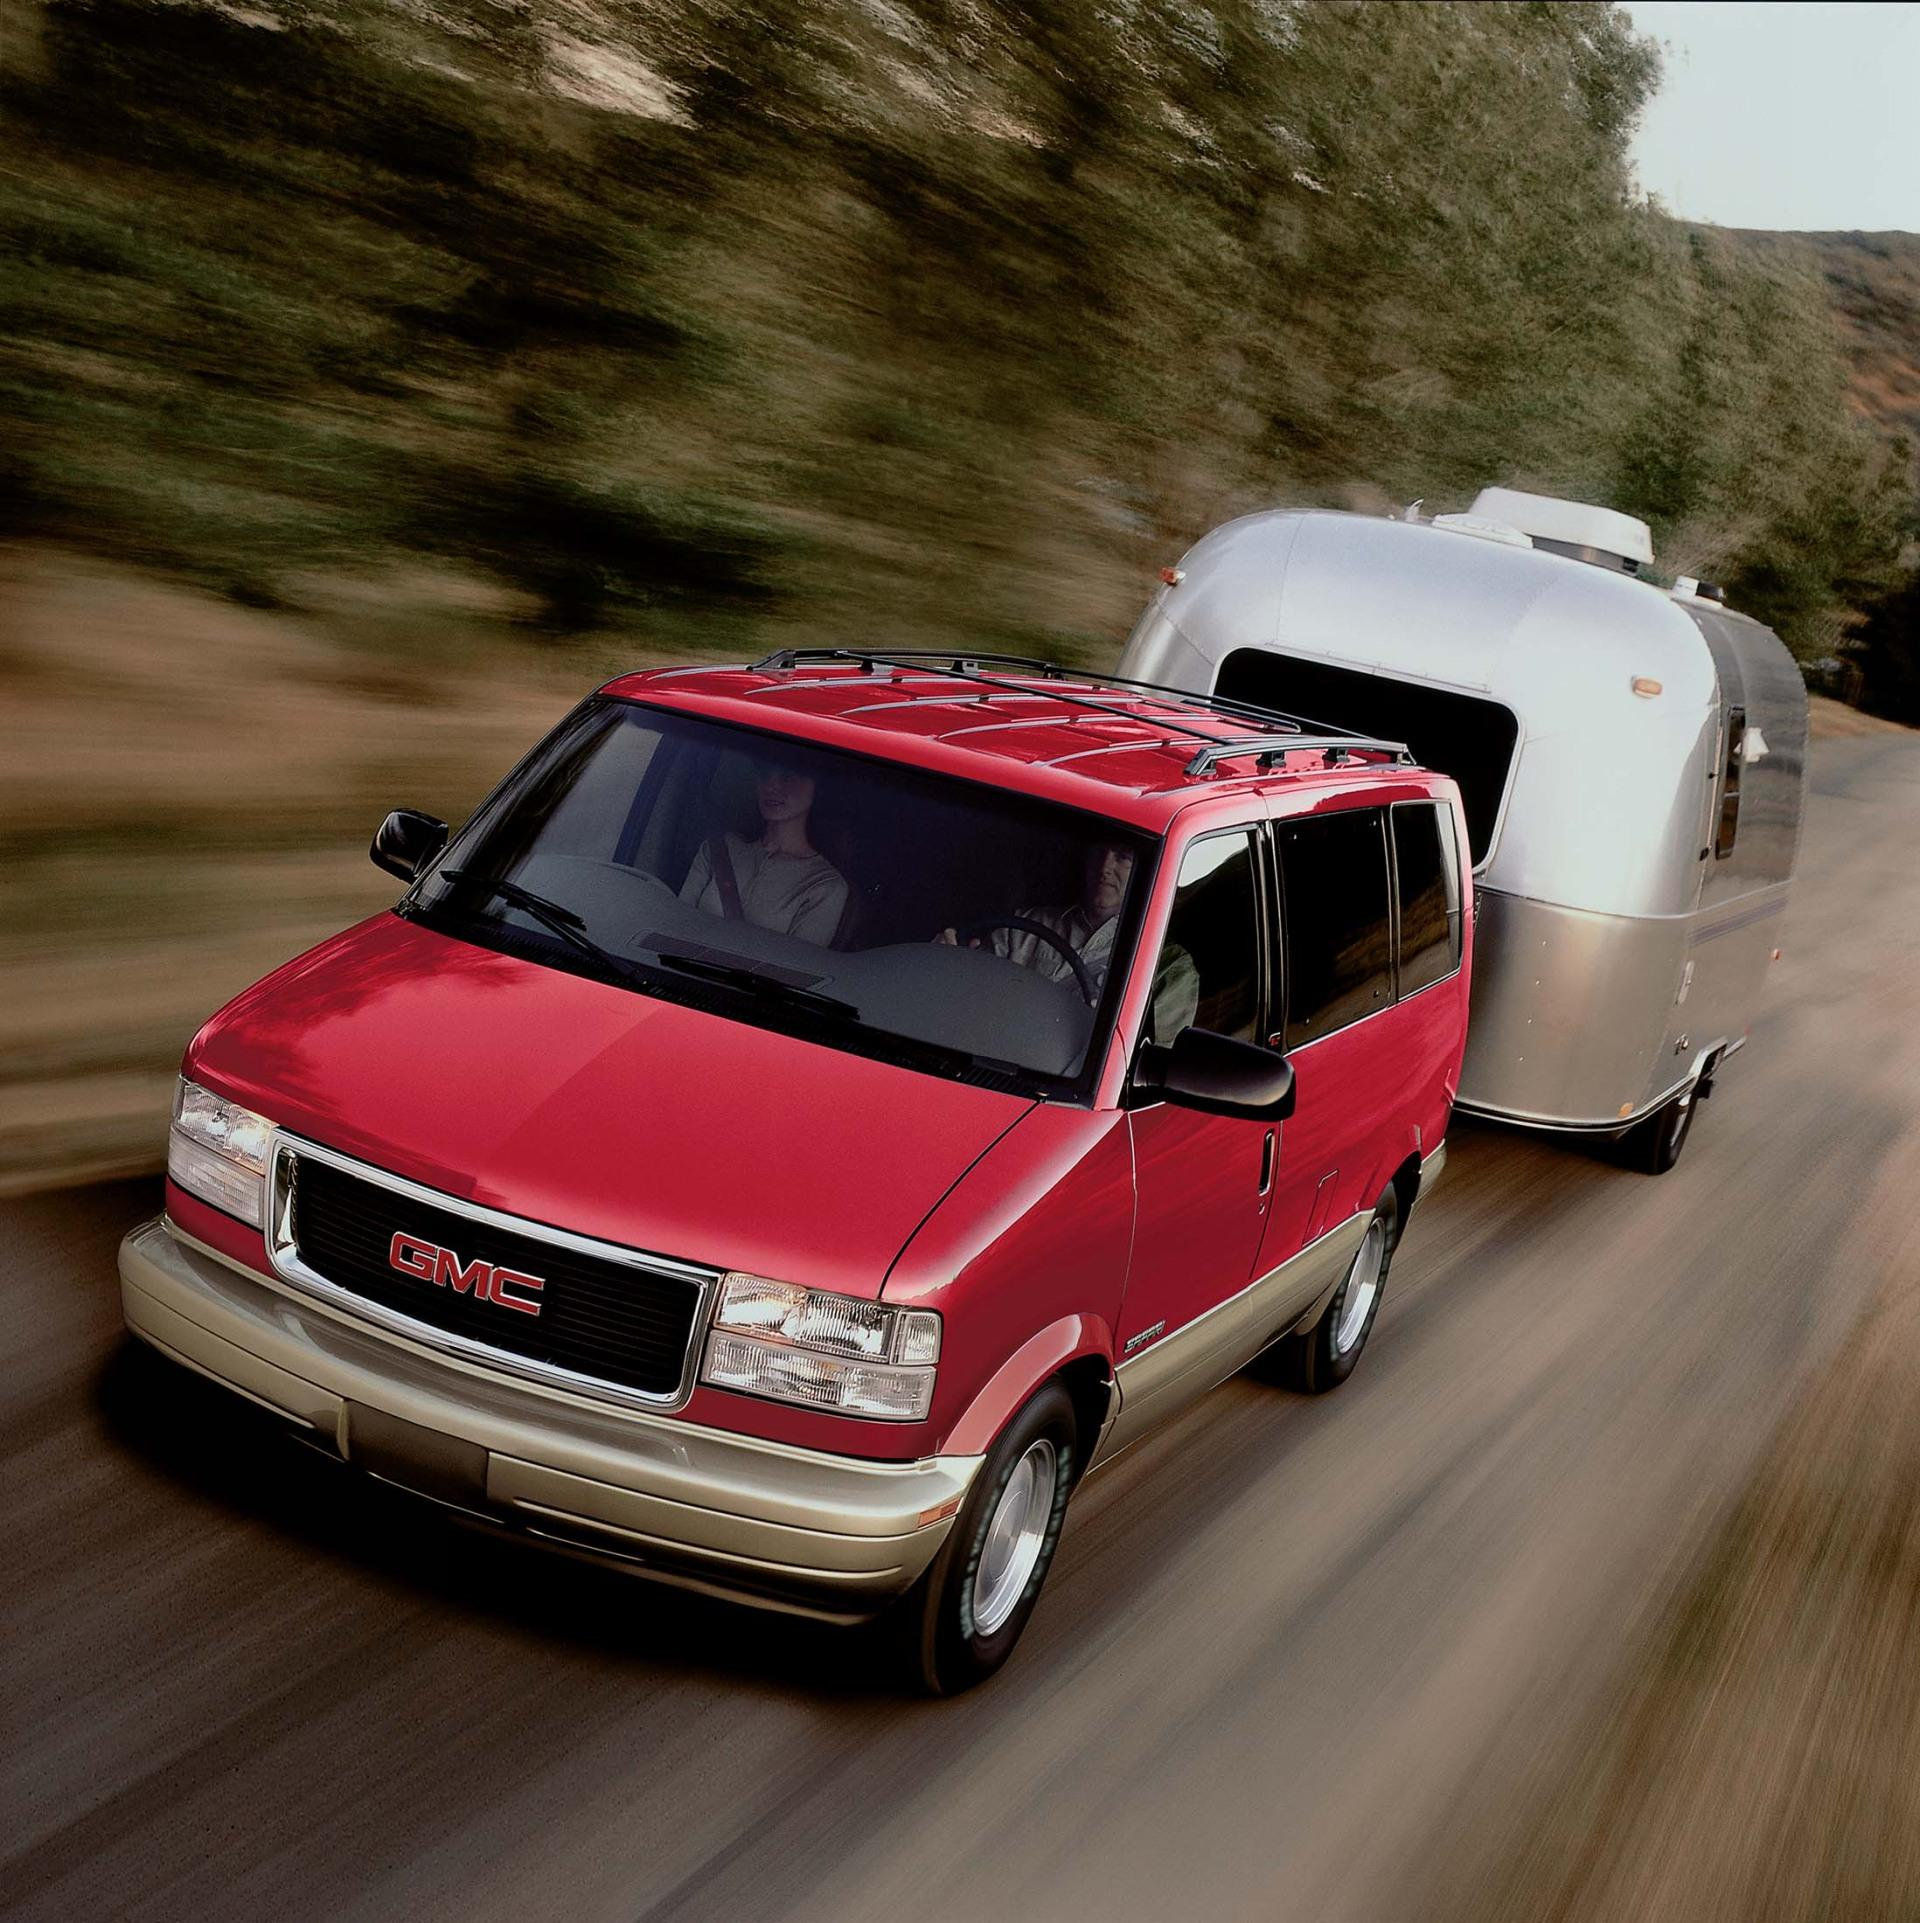 2002 gmc safari pictures history value research news conceptcarz com